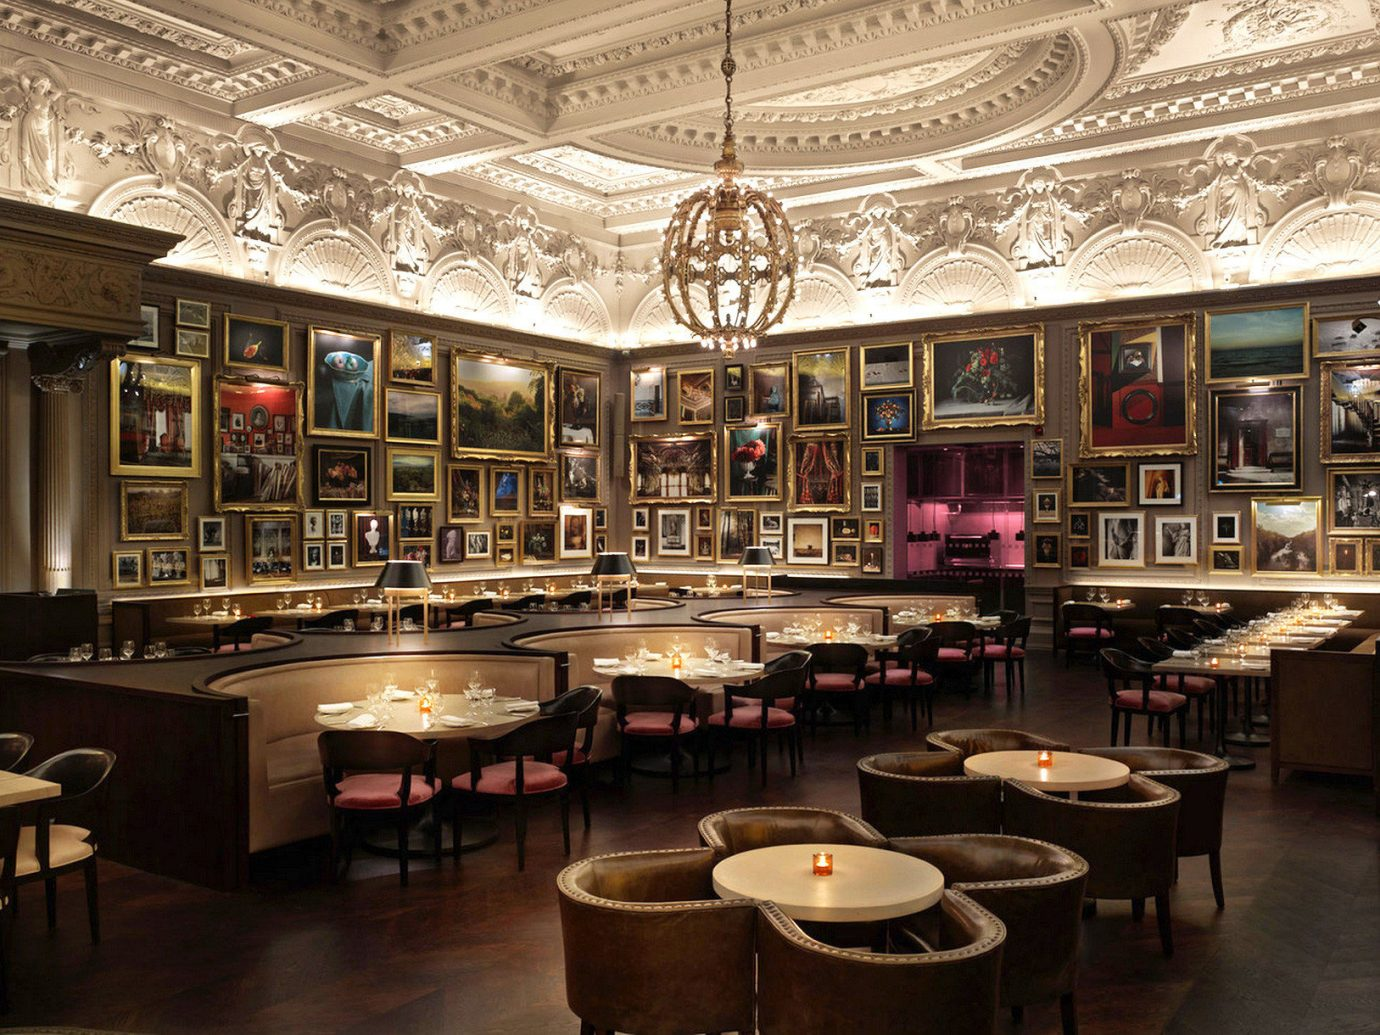 Bar Boutique Hotels Dining Drink Eat Hip Hotels London Luxury Modern Romantic Hotels Trip Ideas table indoor floor ceiling scene restaurant café interior design coffeehouse function hall meal room several dining room